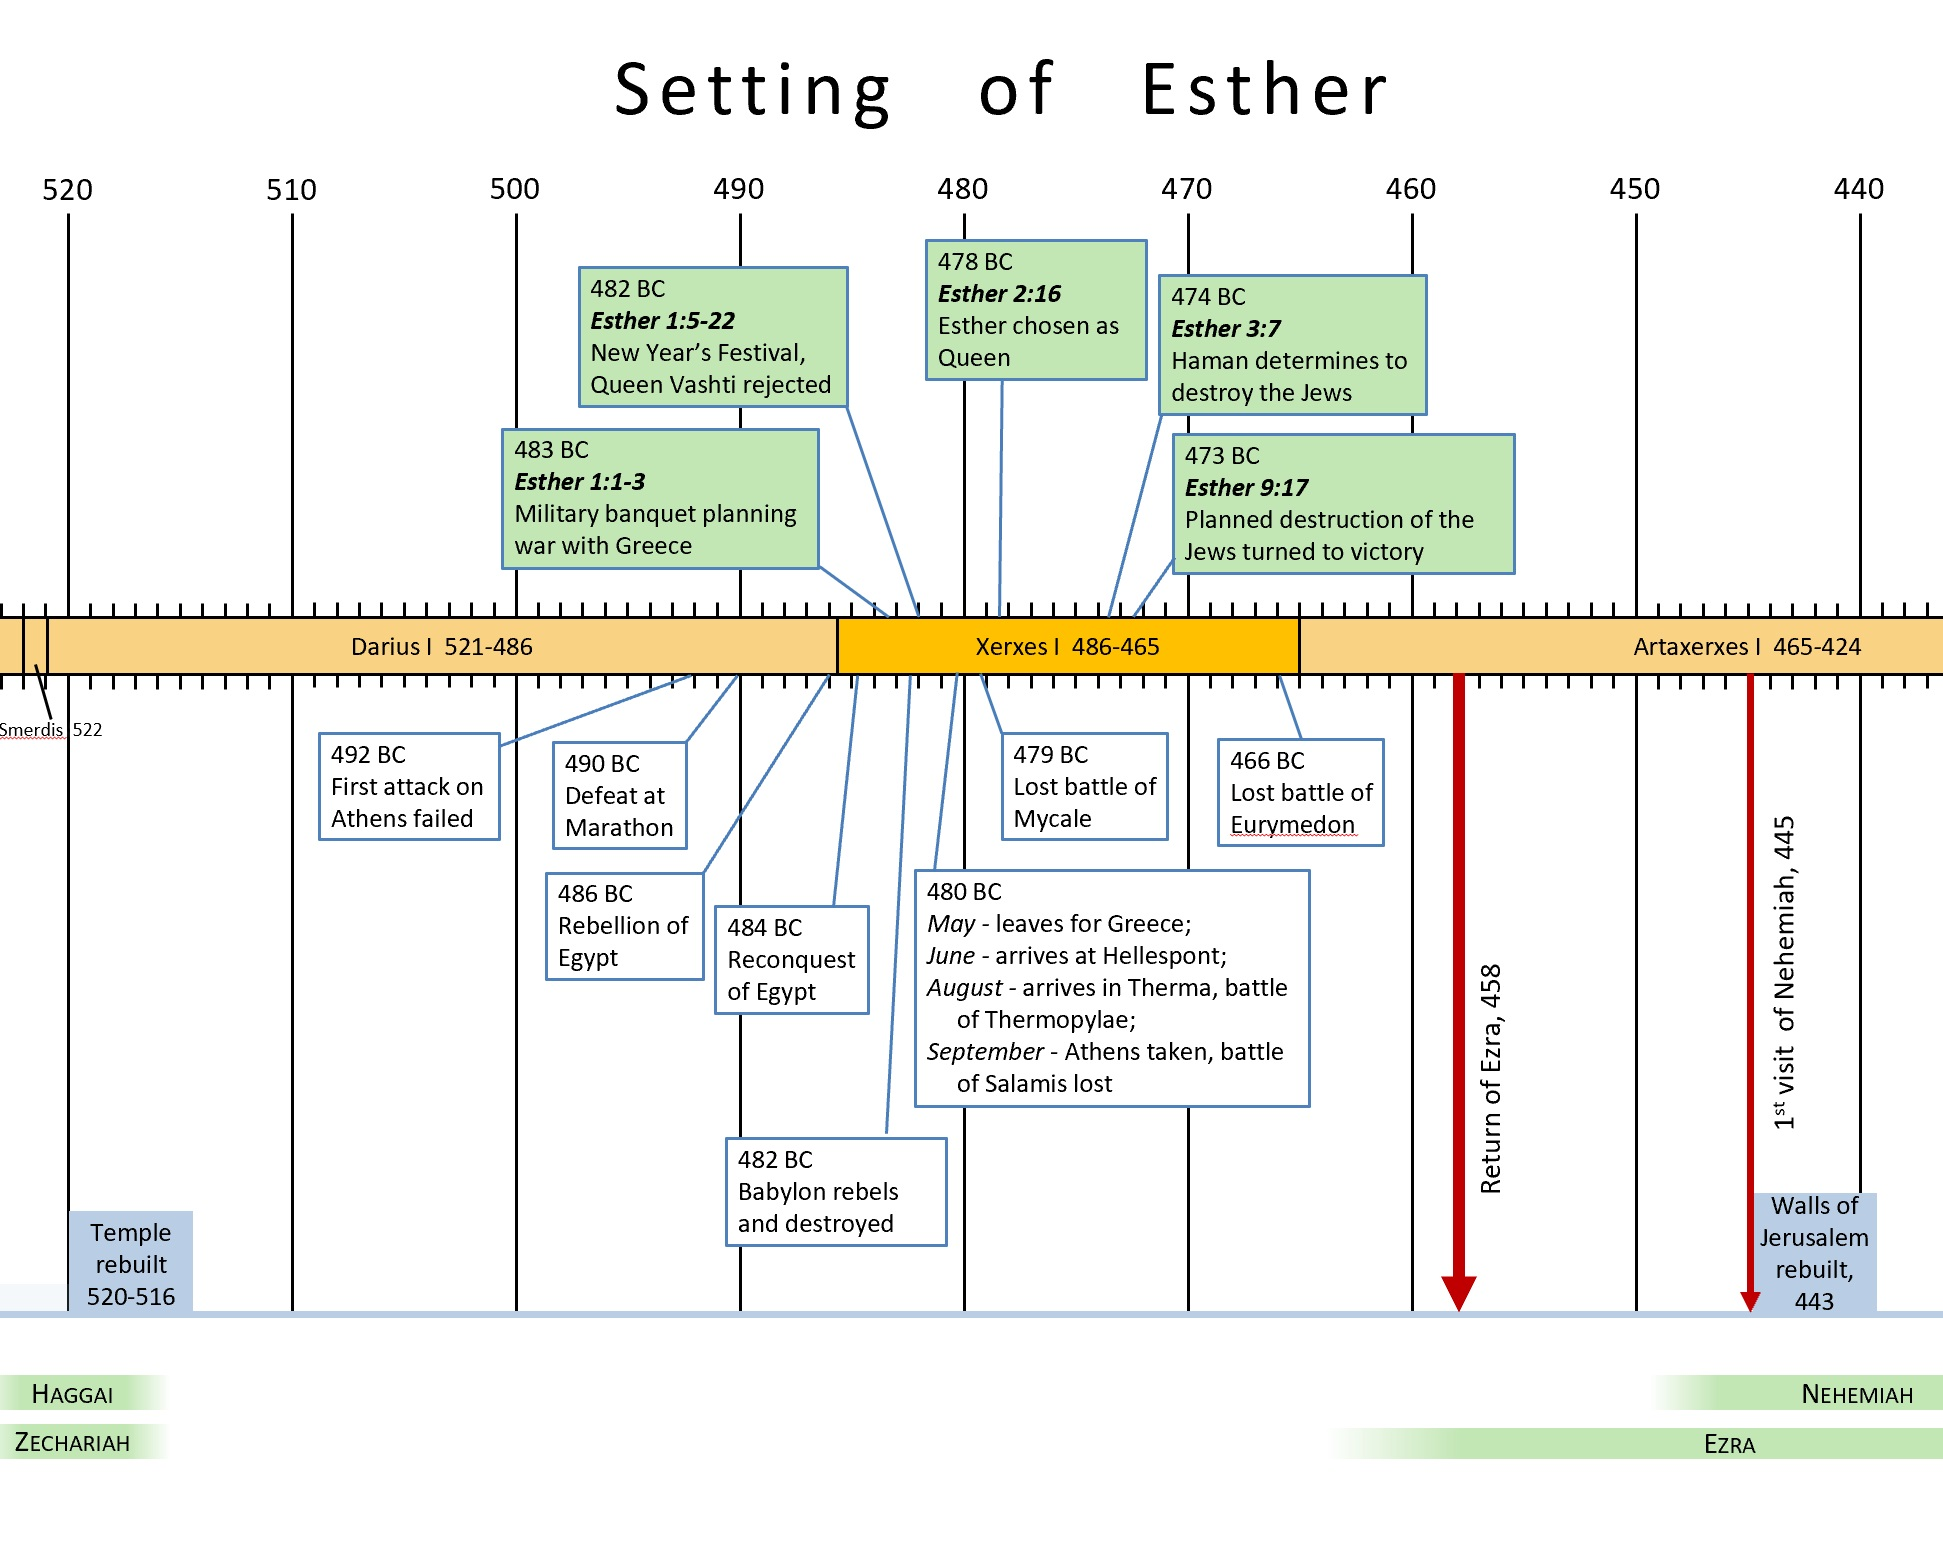 Esther & Chronology